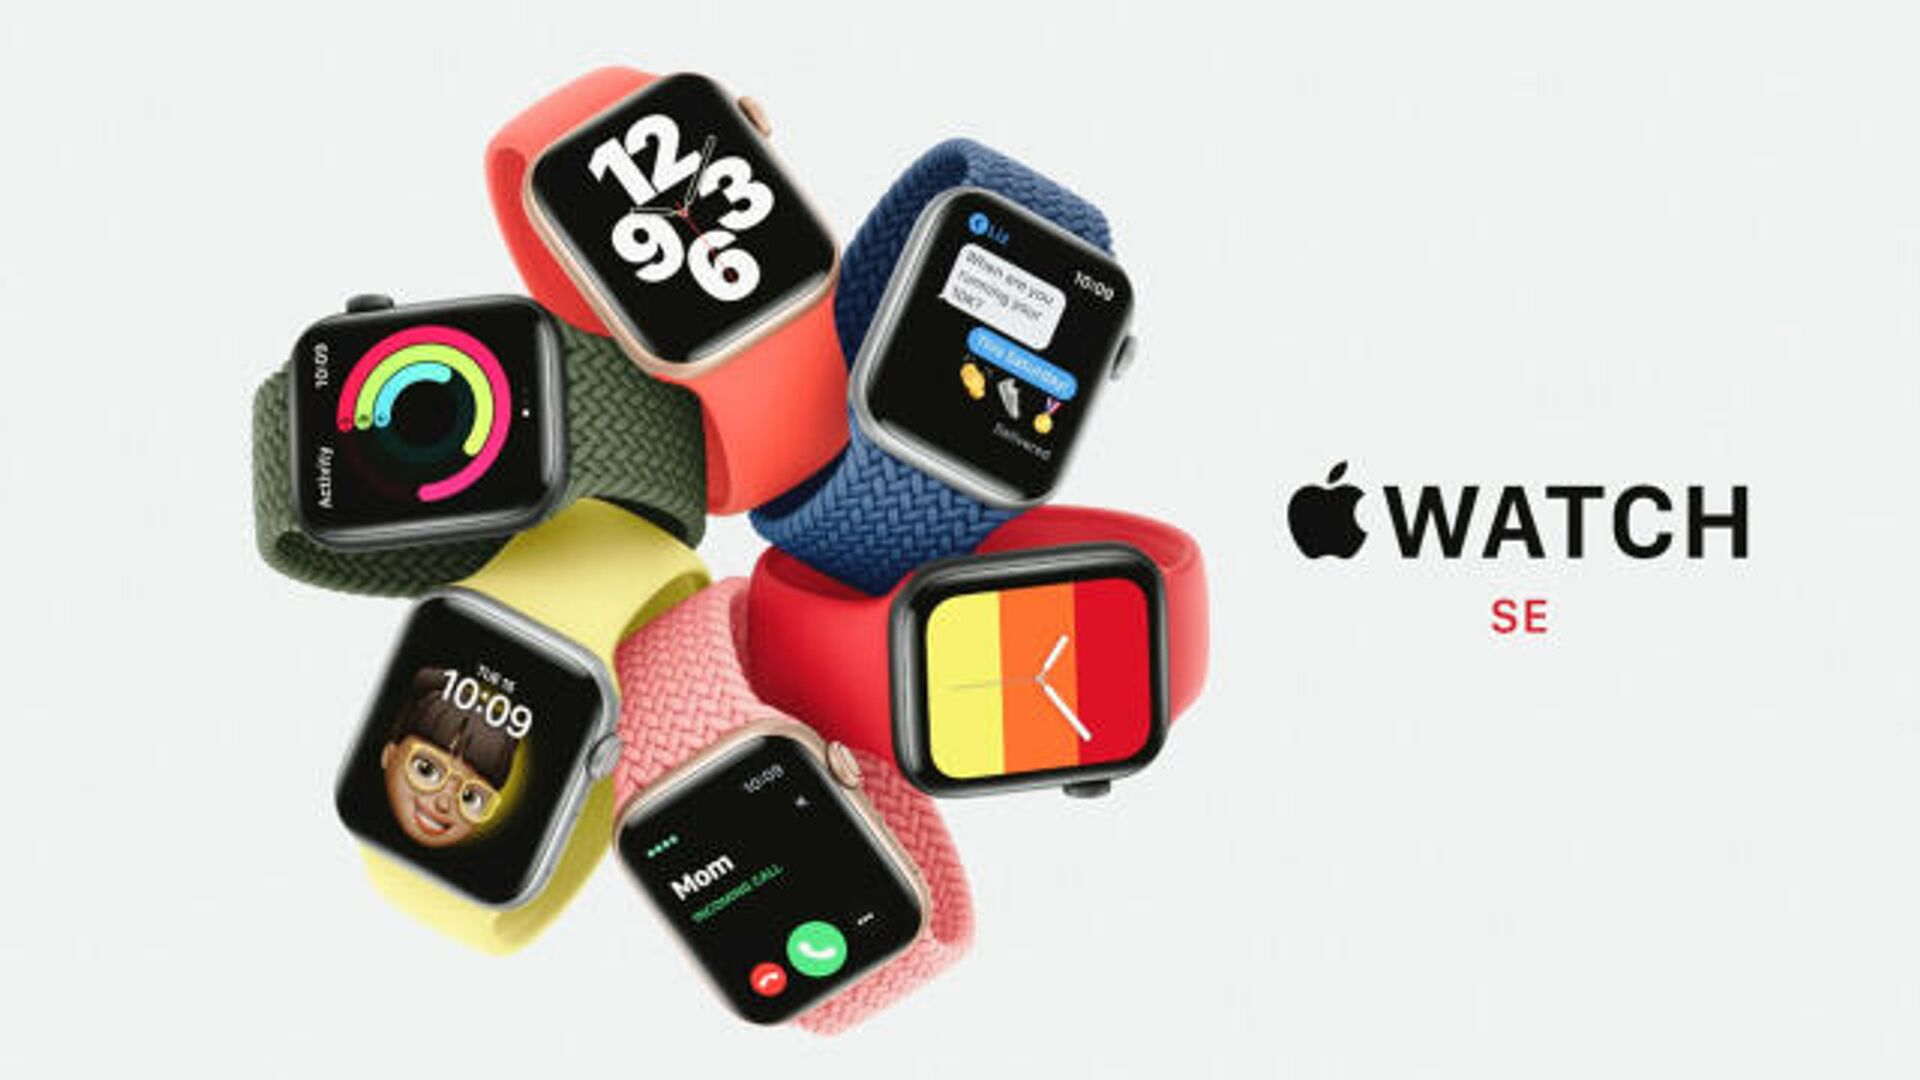 Apple Watch SE - РИА Новости, 1920, 15.09.2020